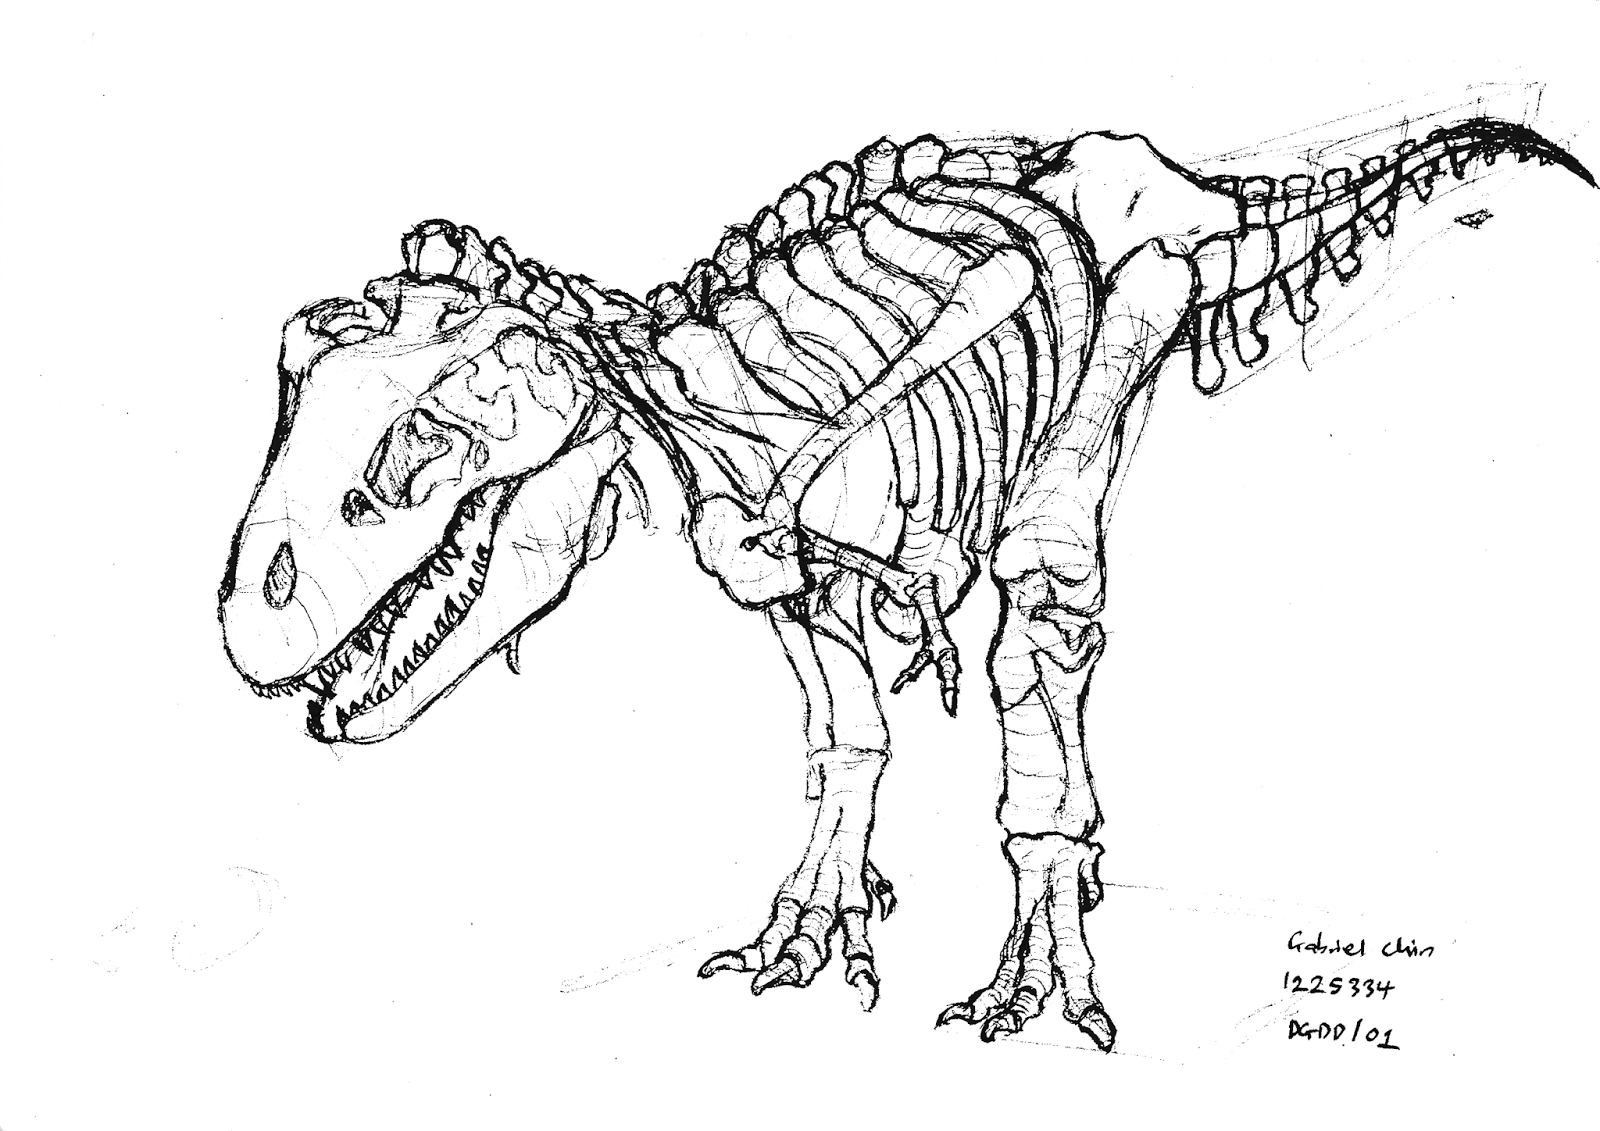 Dinosaur Skeleton Drawing at GetDrawings.com | Free for personal use ...